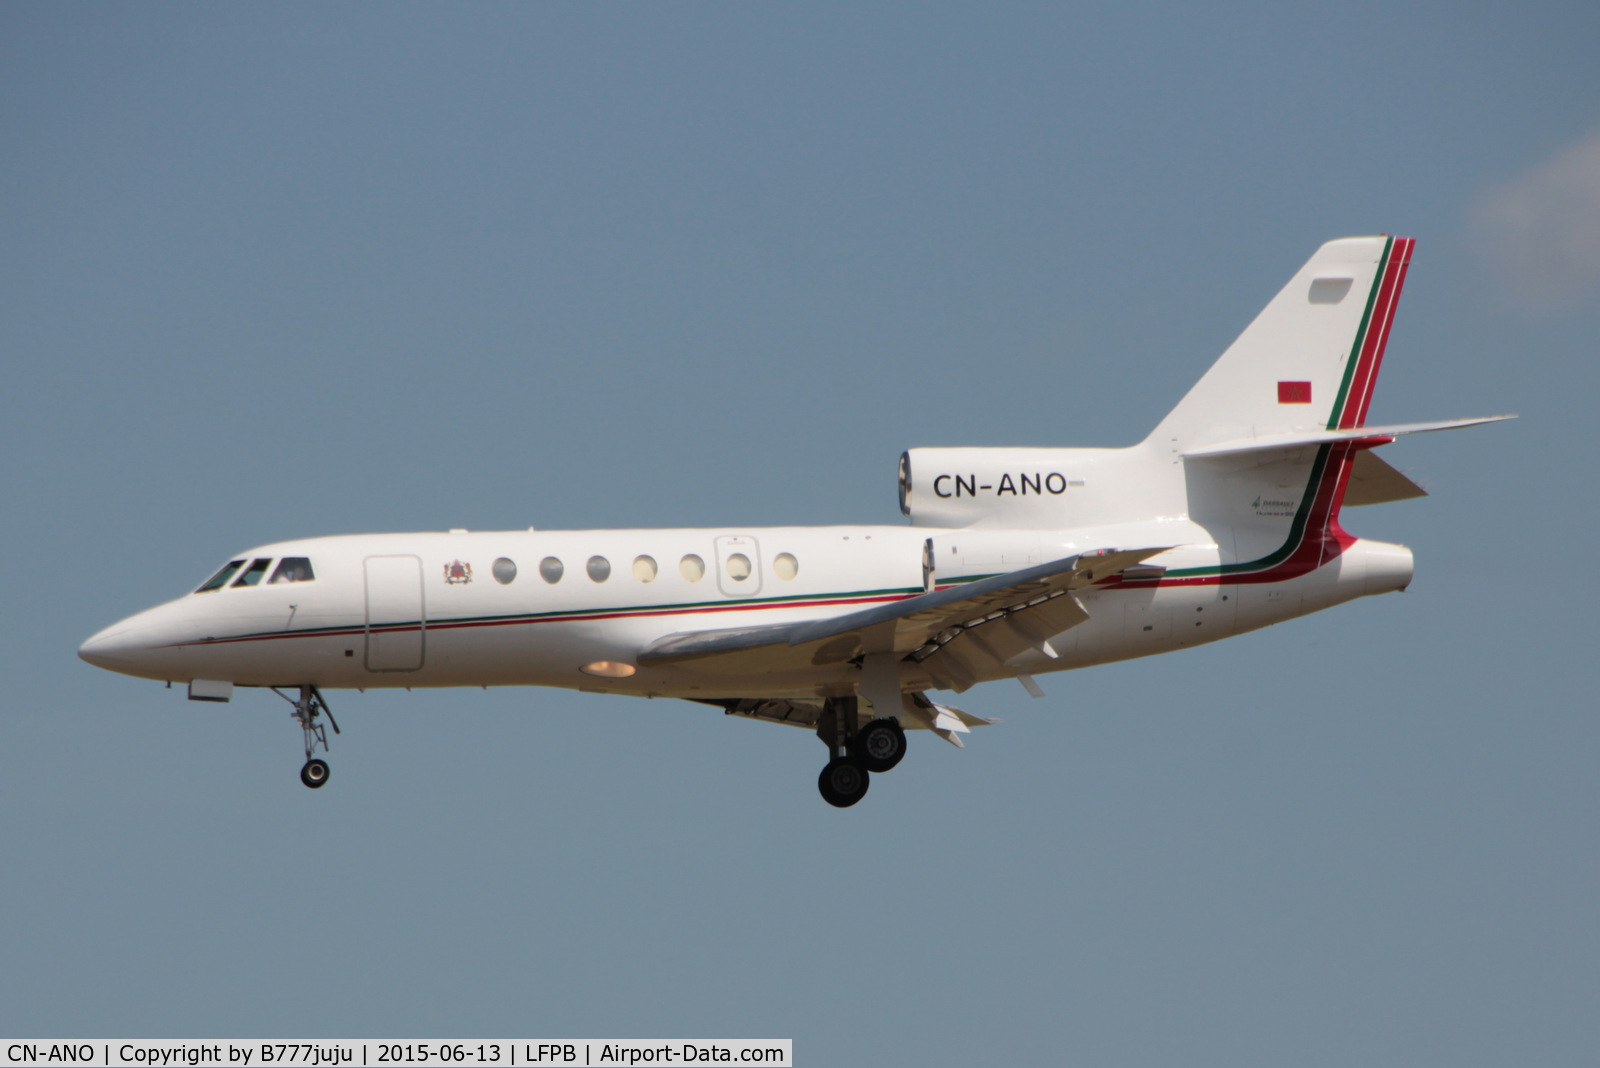 CN-ANO, 1979 Dassault Falcon 50 C/N 12, at Le Bourget